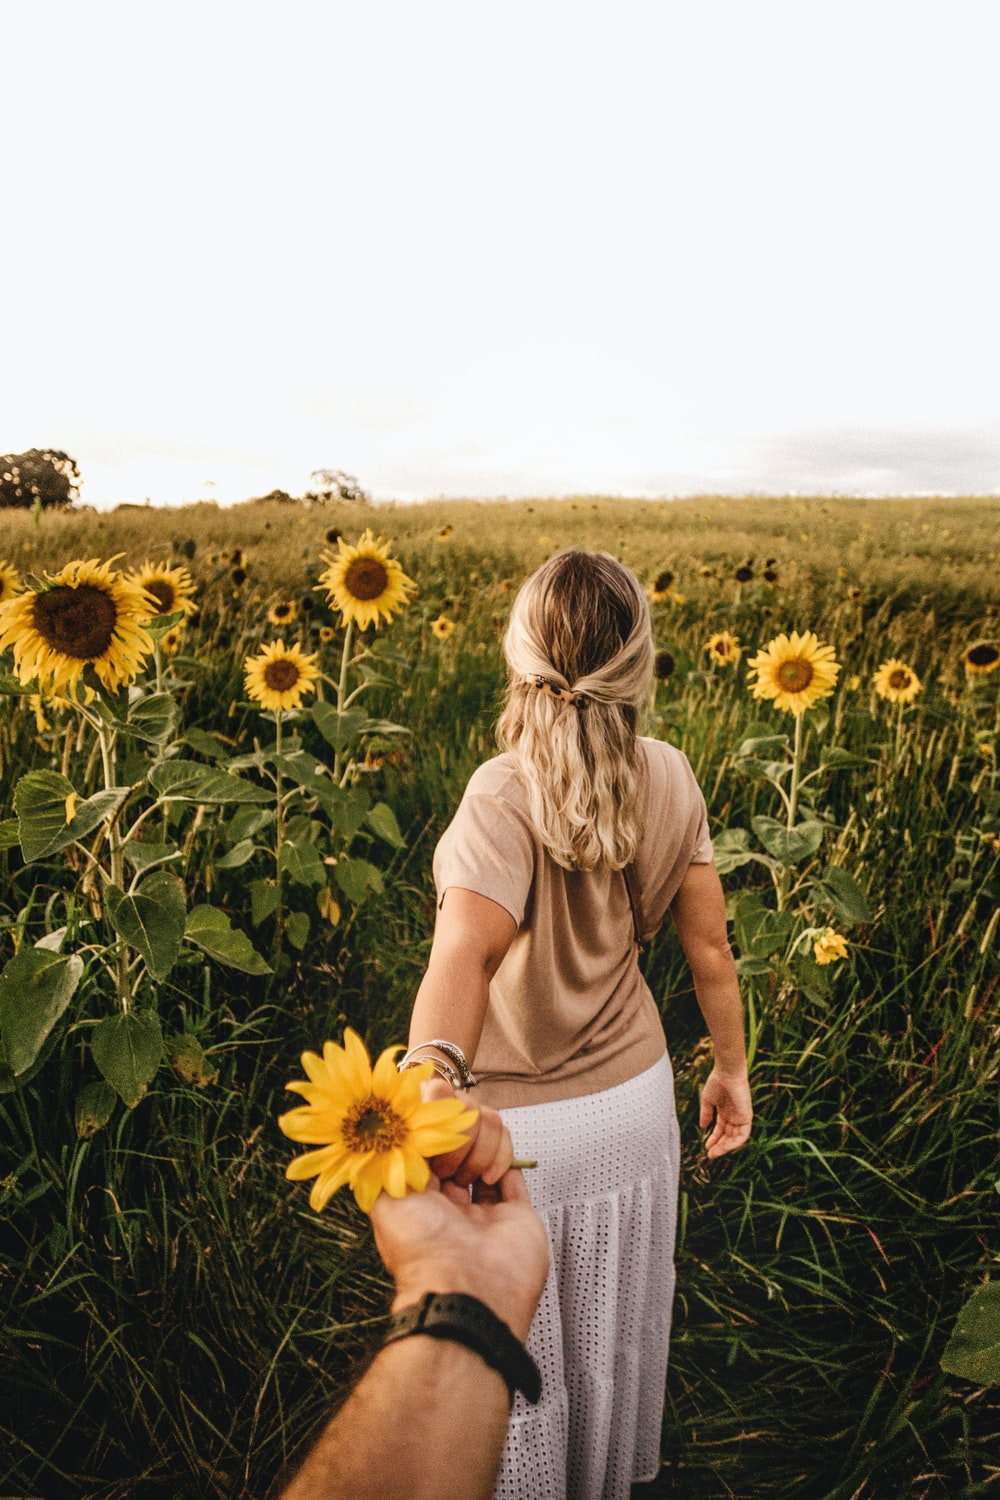 woman in brown shirt standing on sunflower field during daytime